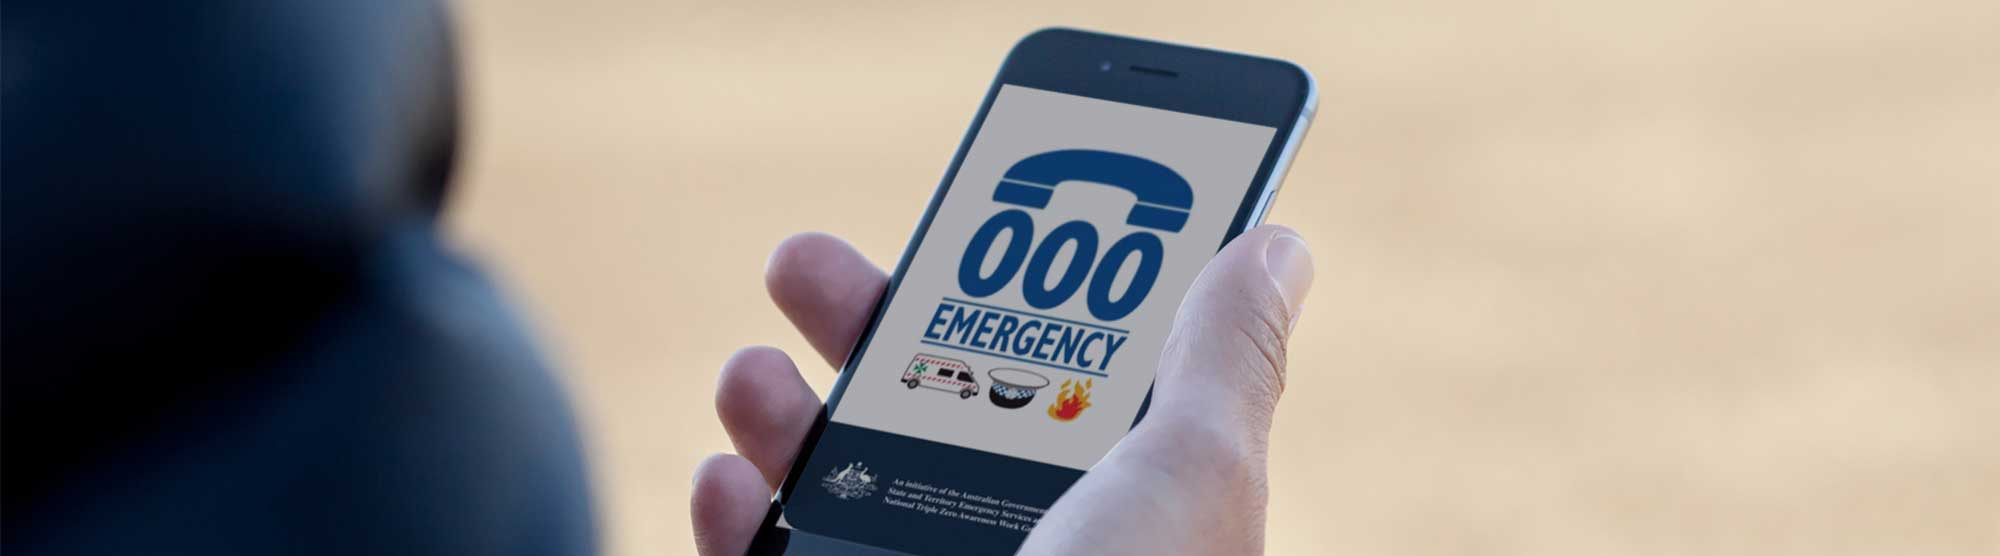 Emergency app showing on a mobile phone